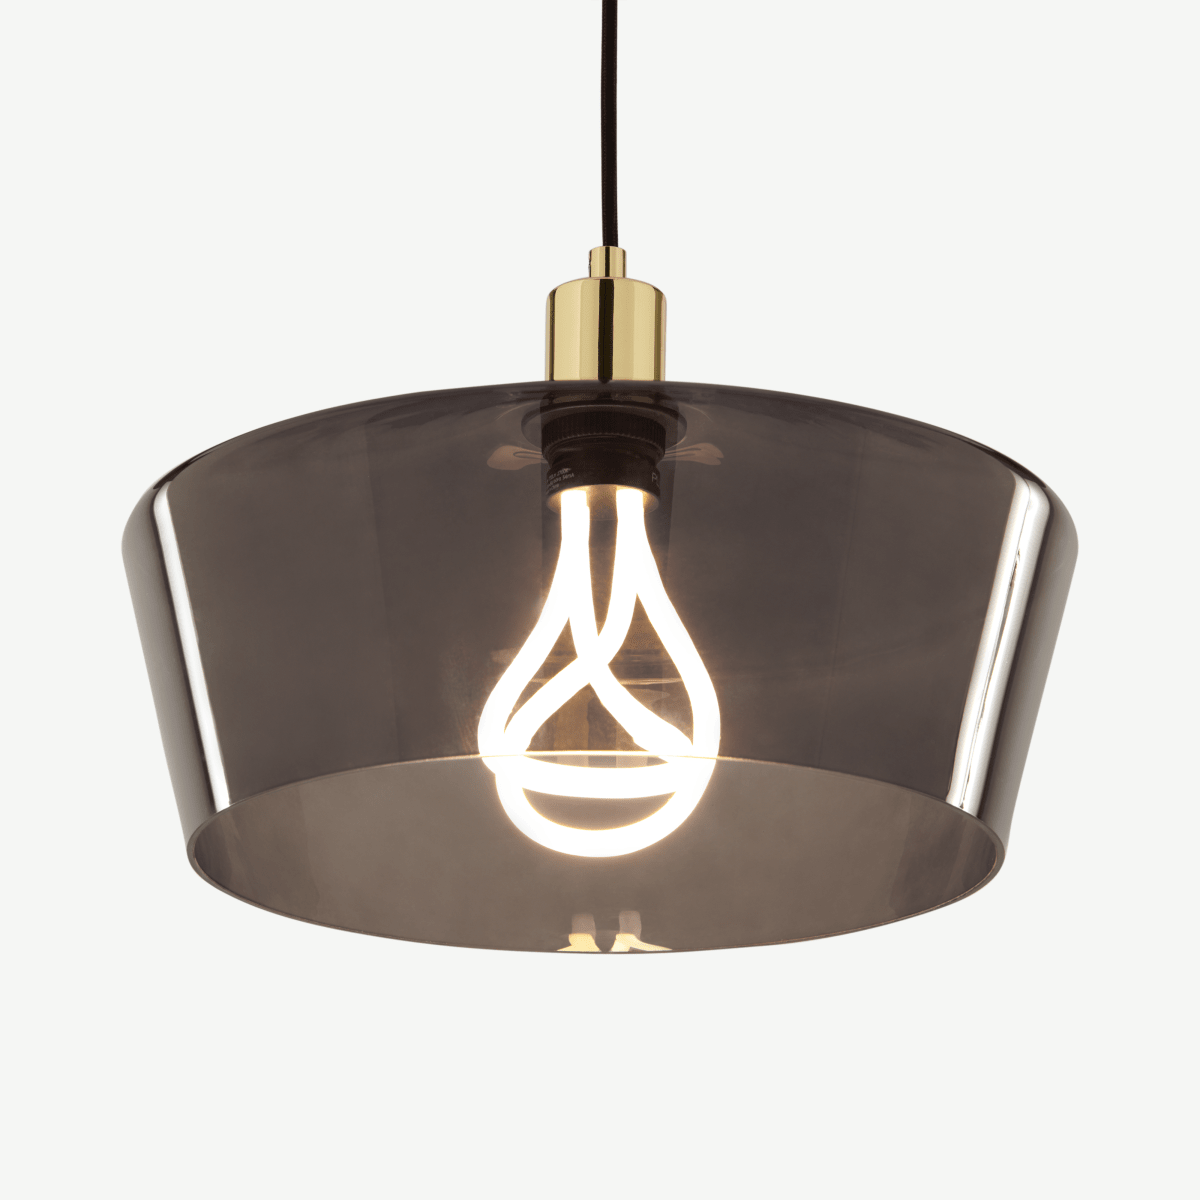 Kem Pendant Light and Plumen 001 LED Bulb, Smoke Grey Glass and Brass